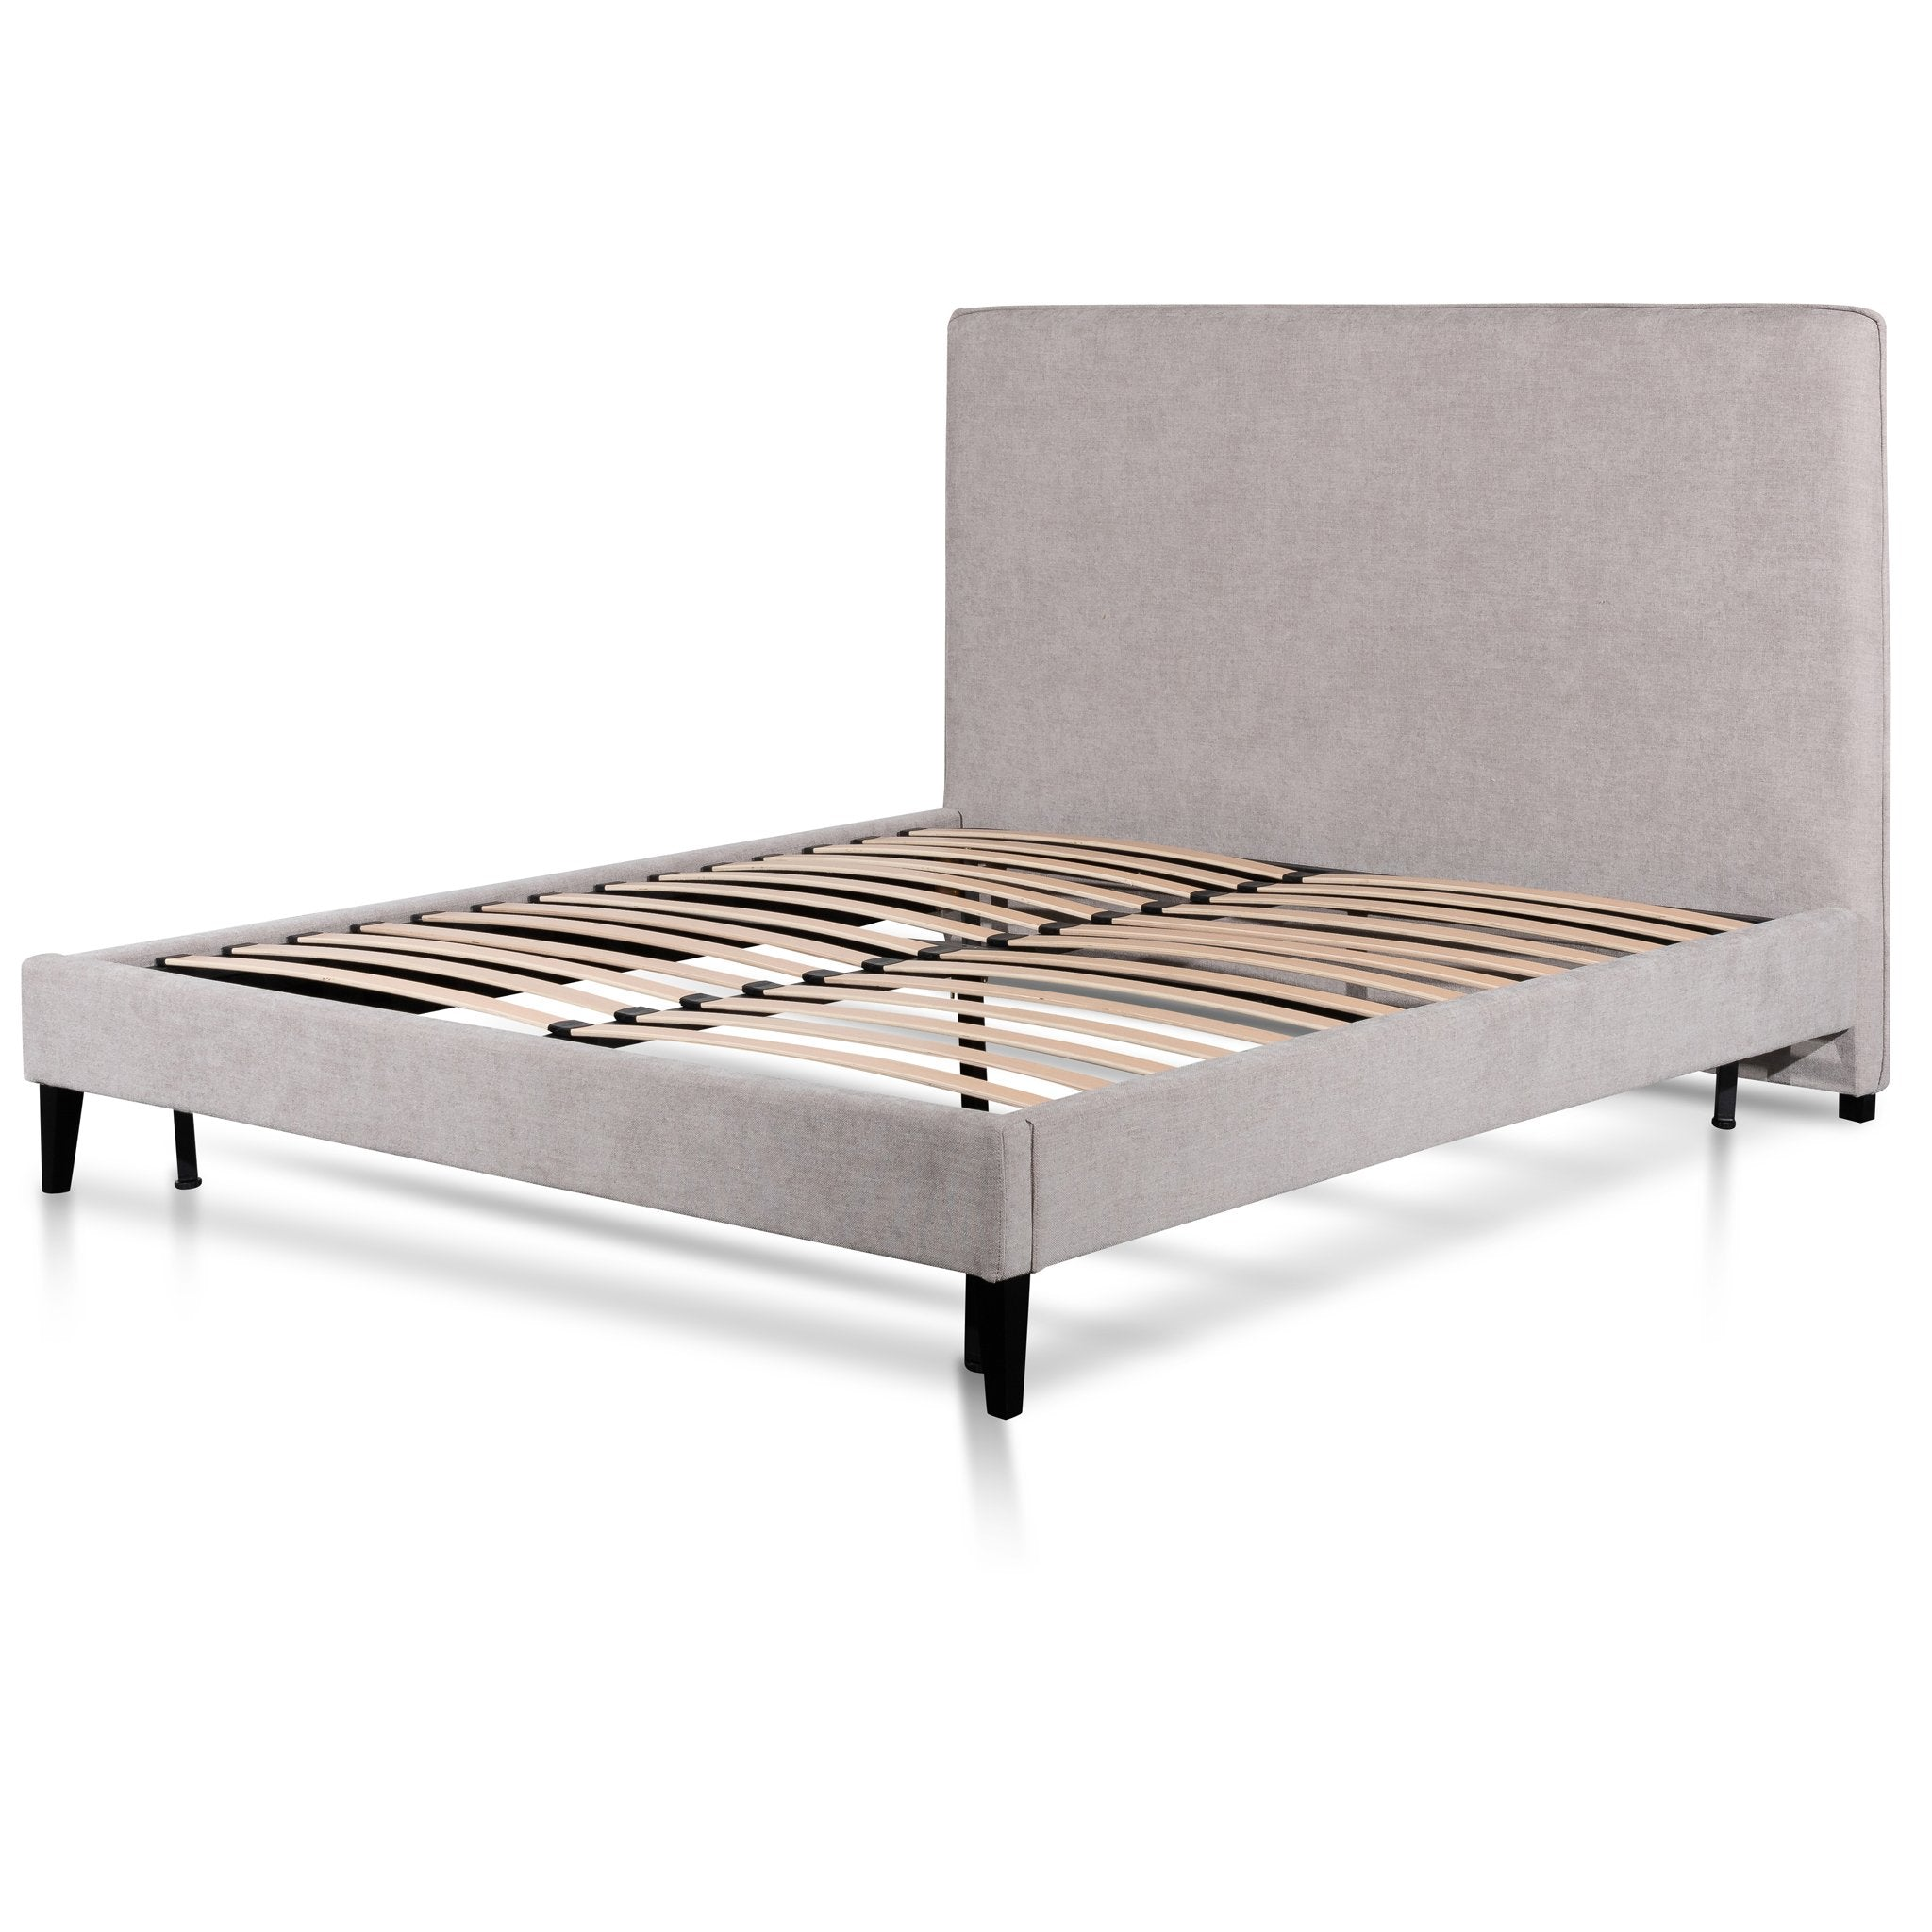 Cecelia Queen Bed Frame - Comfort Grey